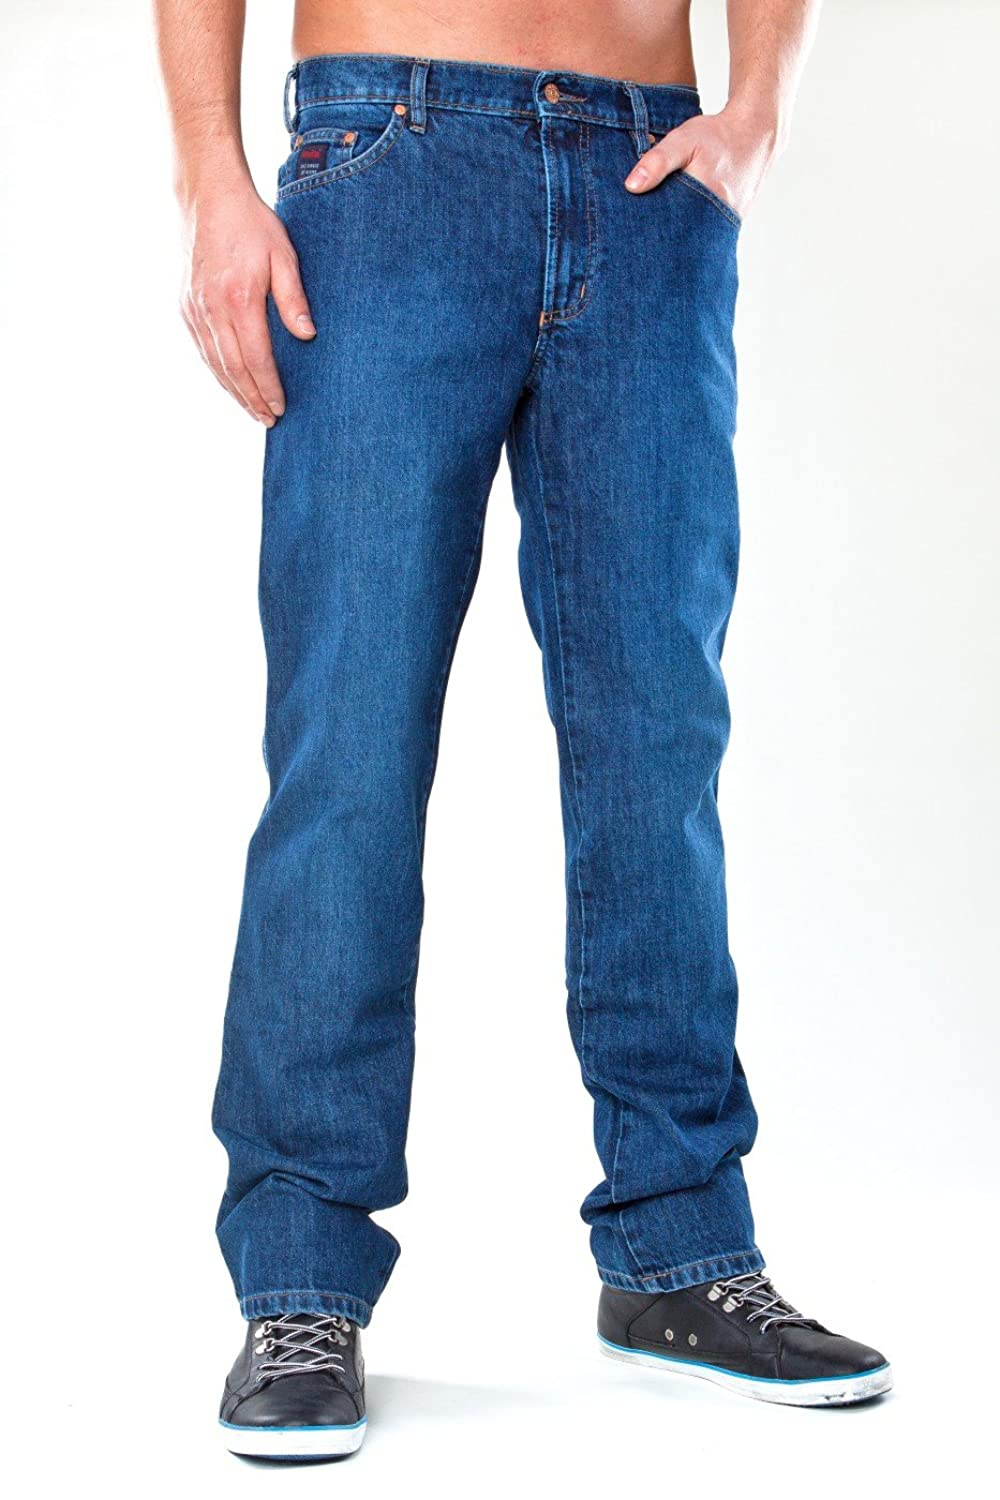 Revils 302 - Five Pocket Classic Stretch, Blue, Men, Jeans & Pants, Size W42/L30